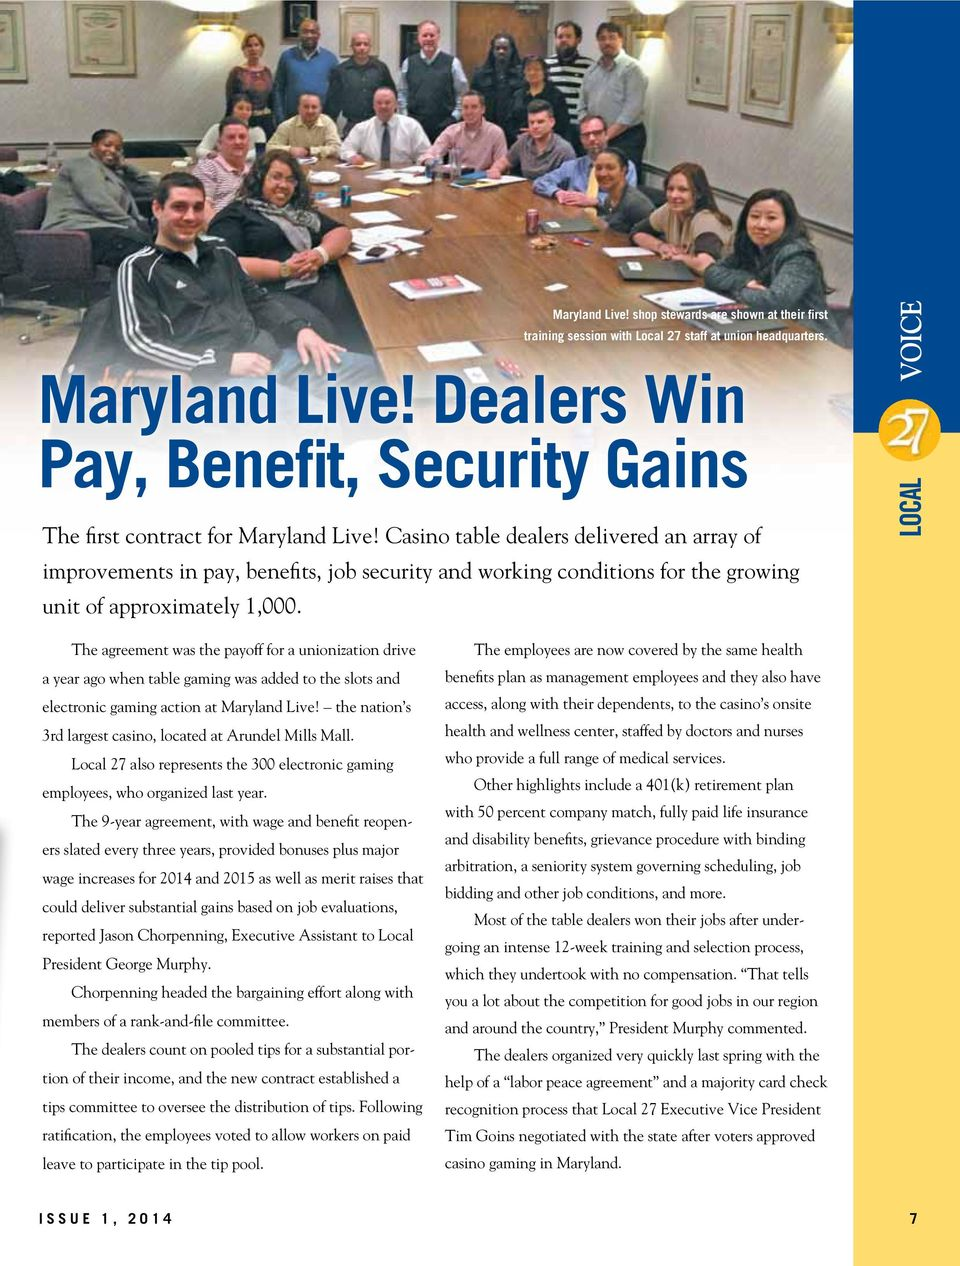 Casino table dealers delivered an array of improvements in pay, benefits, job security and working conditions for the growing unit of approximately 1,000.